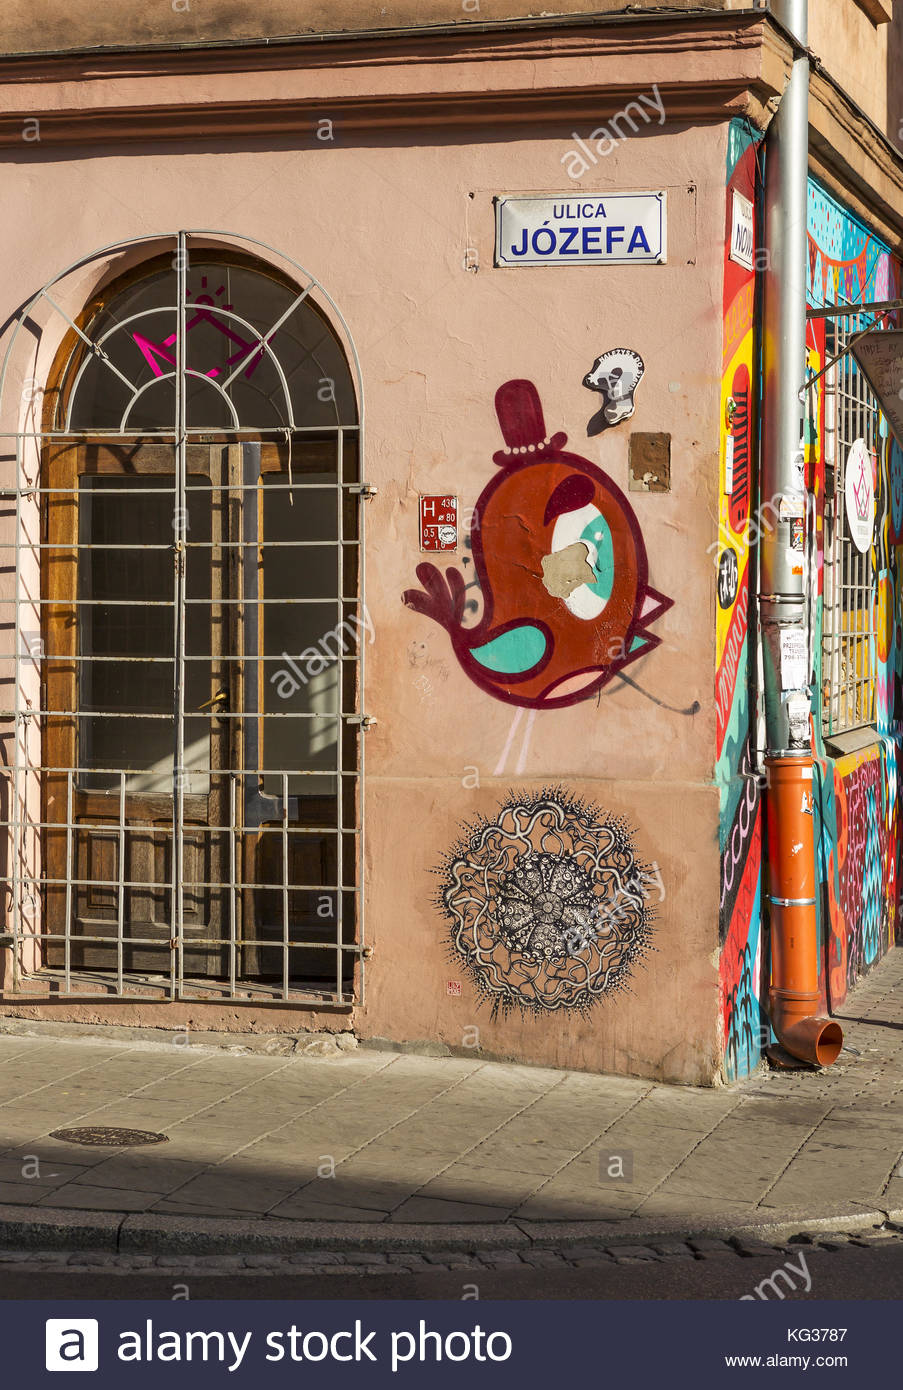 Unattributed wall art on a building in the artist area of Krakow - Stock Image